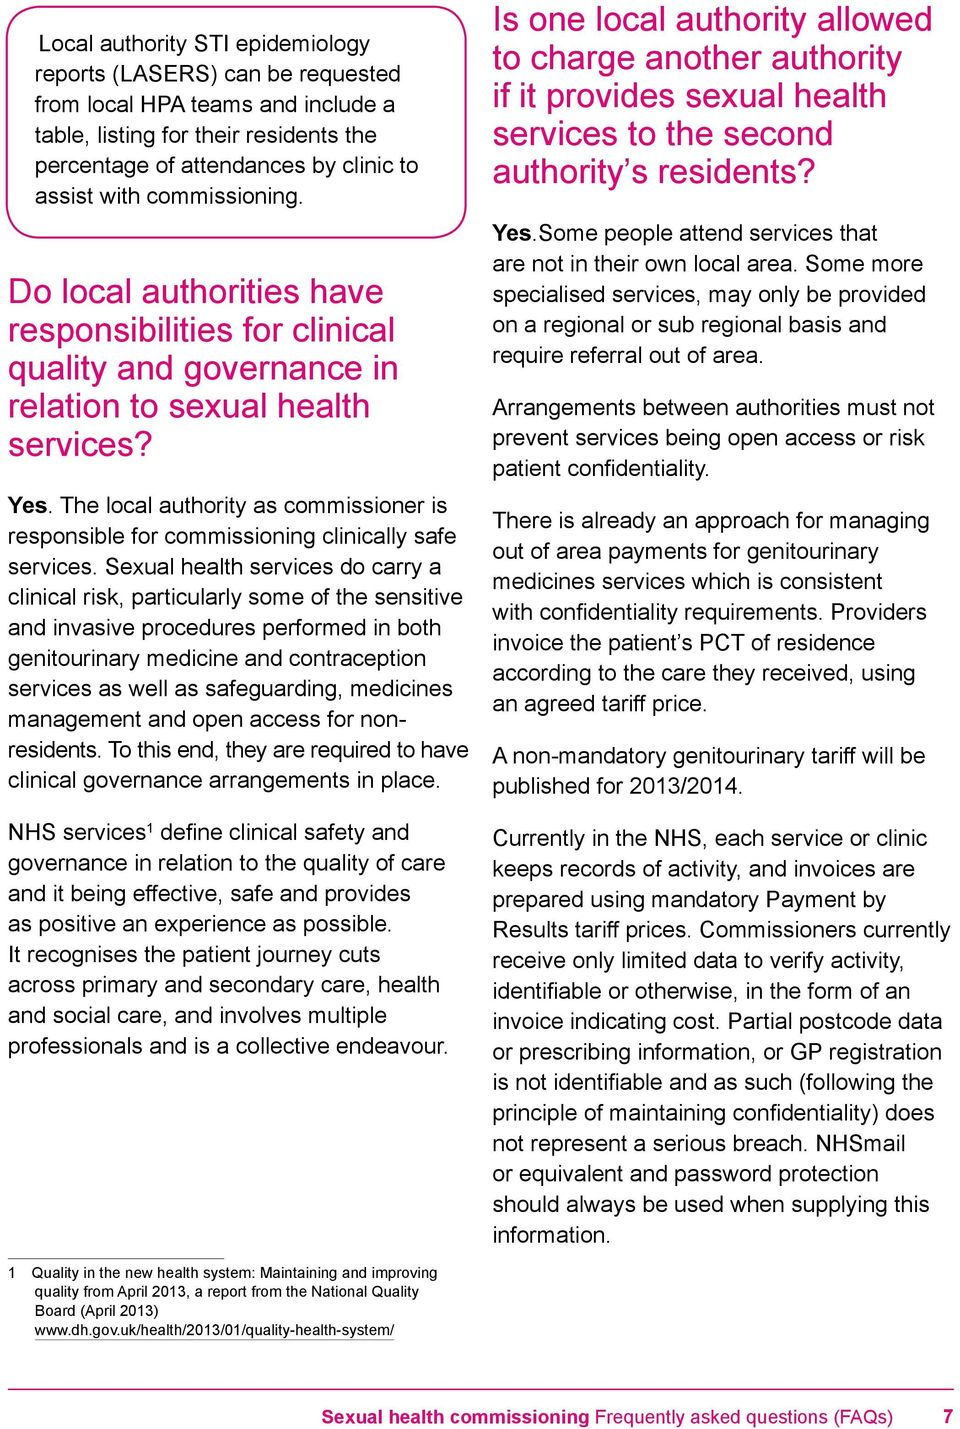 The local authority as commissioner is responsible for commissioning clinically safe services.